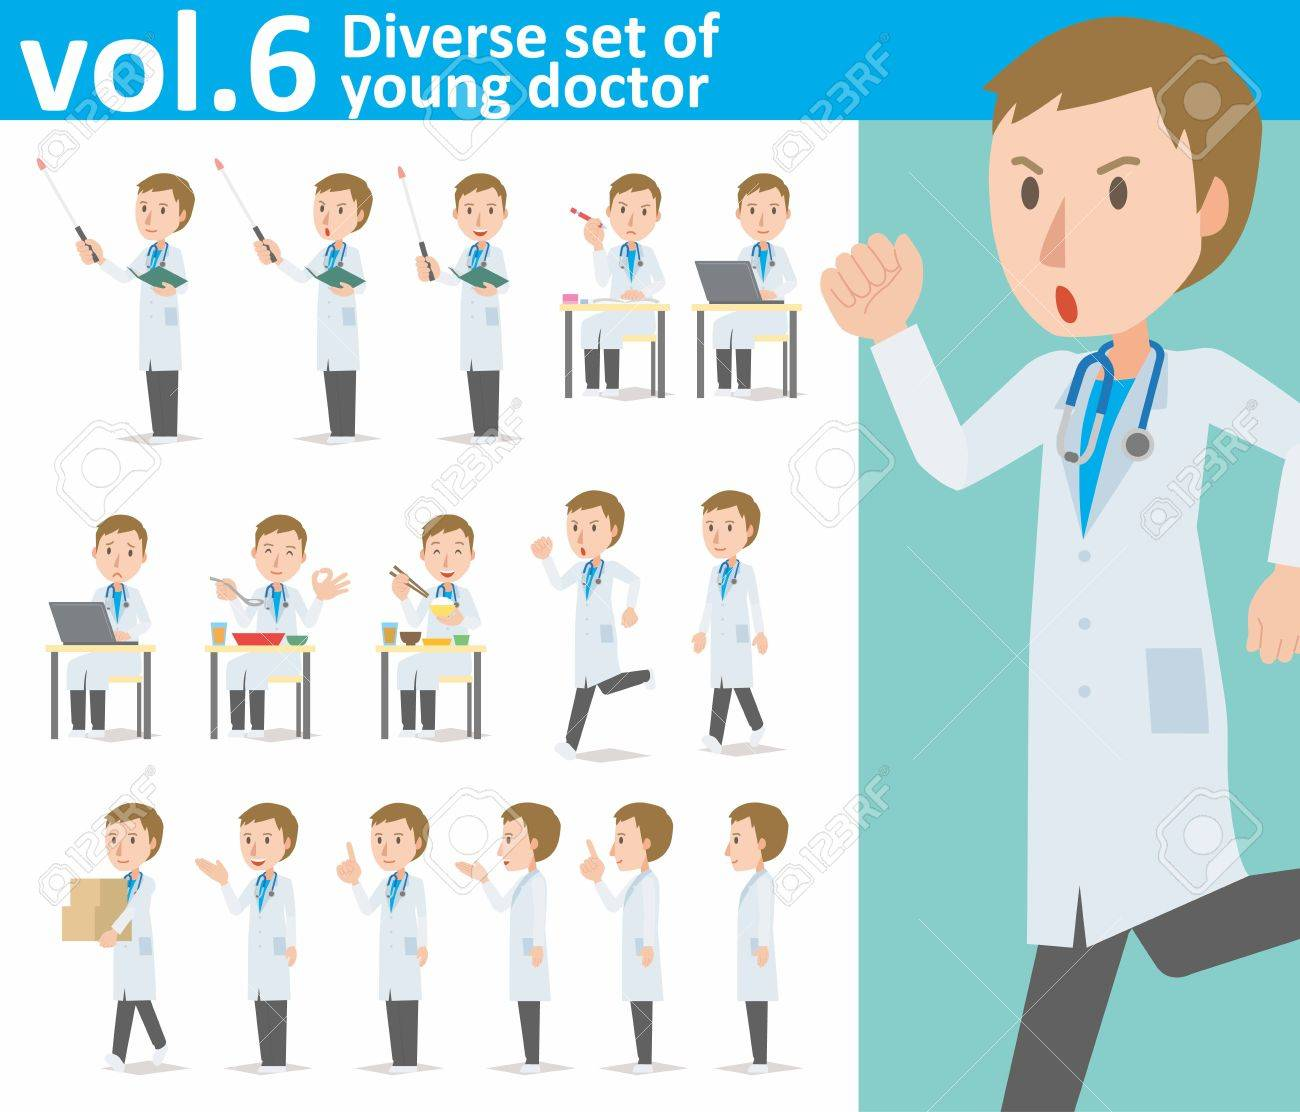 diverse set of young doctor on white background - 62103262